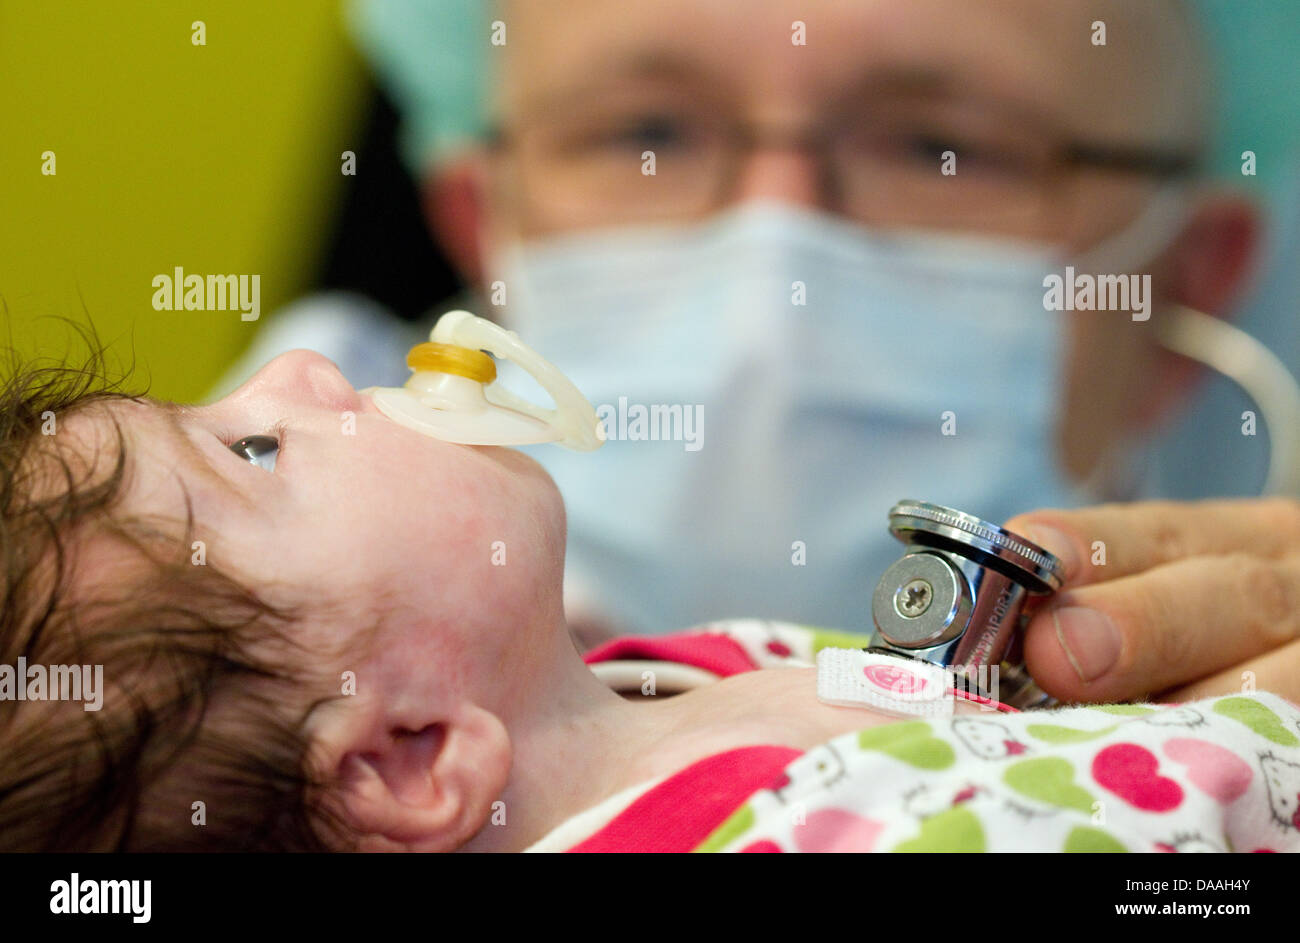 Dr. Hans Gerd Kehl, the commissionary head of the children's cardiology, checks upon the operated 6-weeks-old - Stock Image